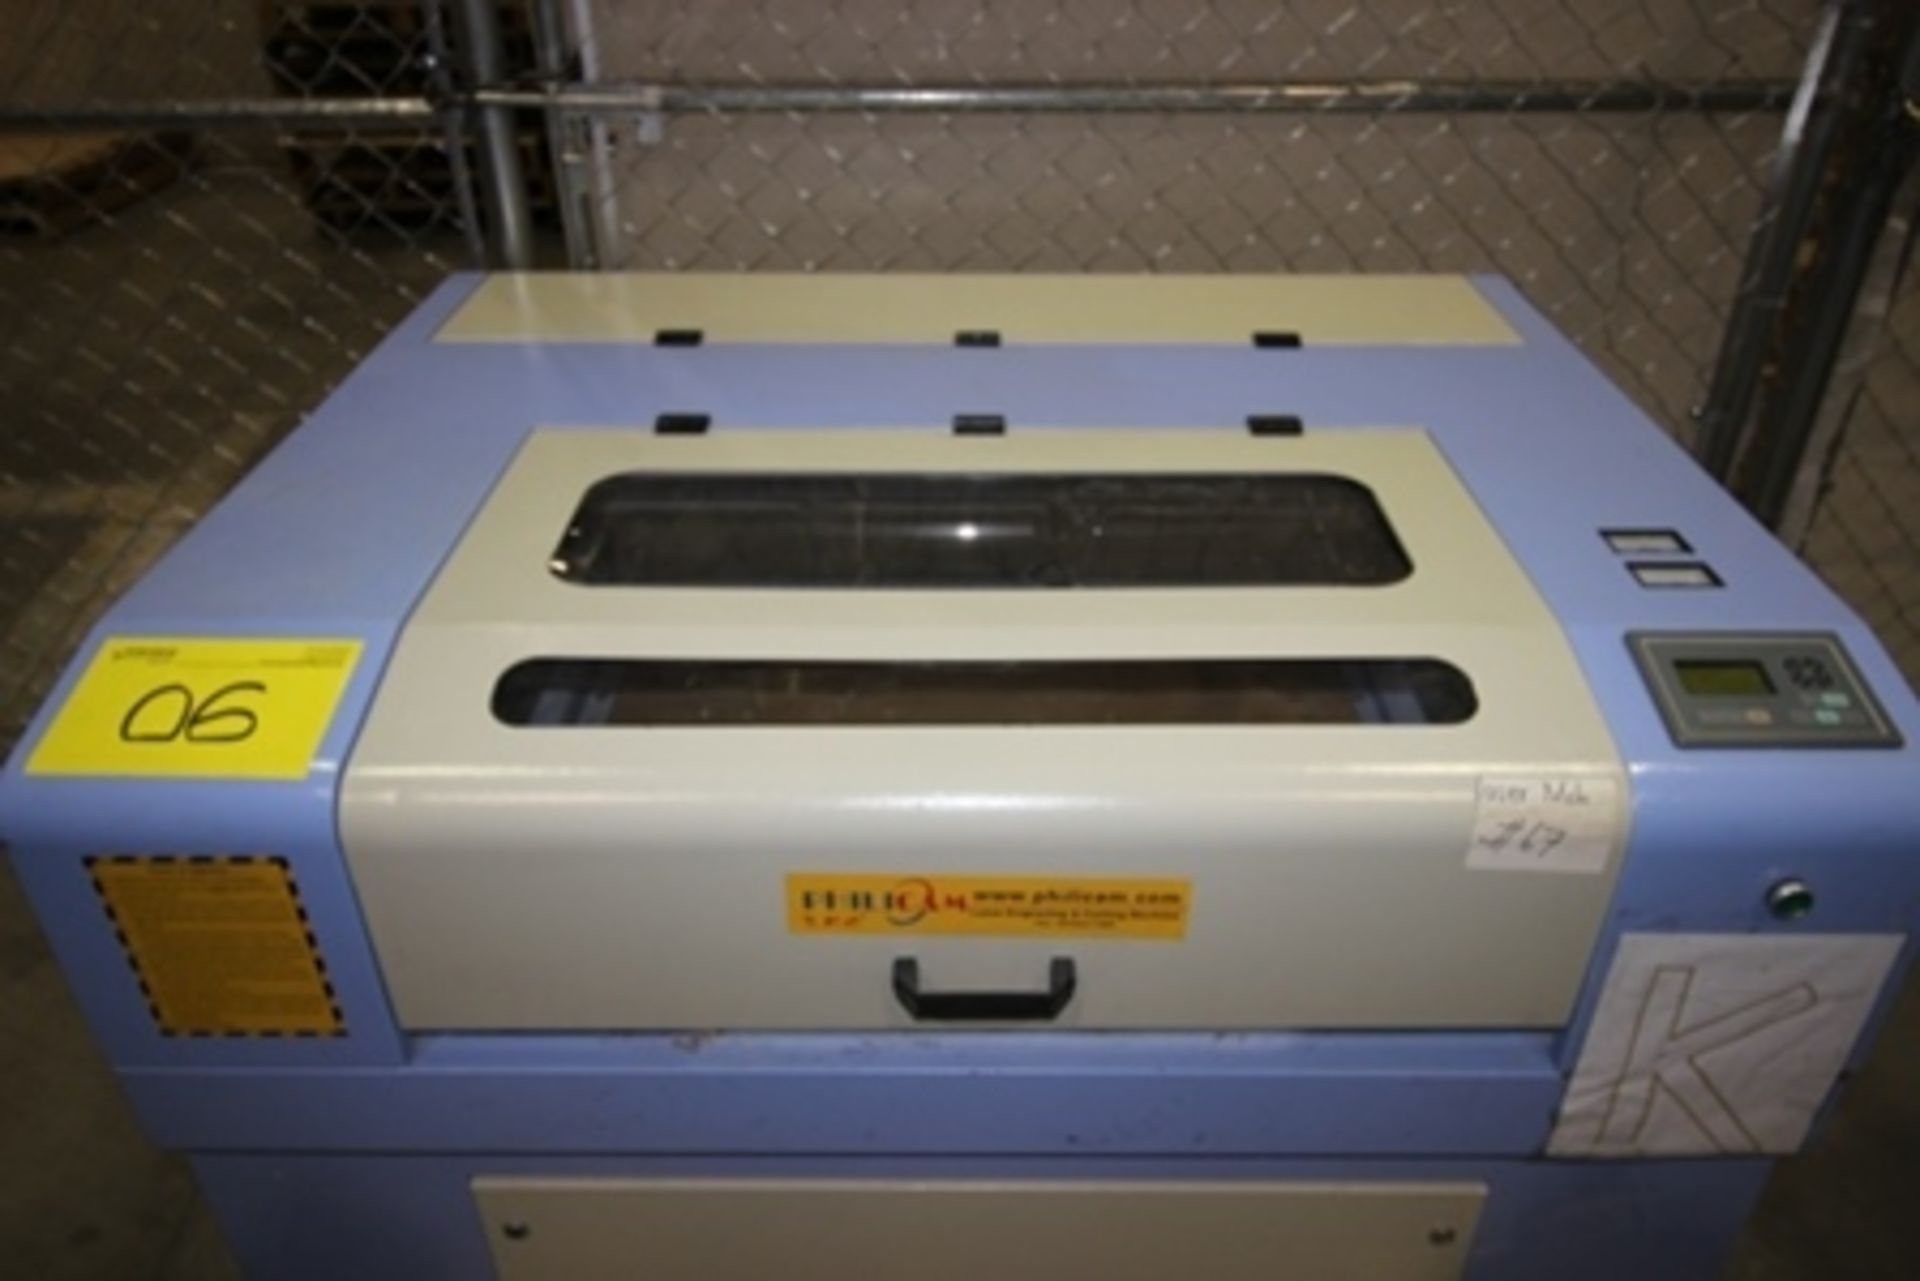 Lot 6 - 2017 Phillican CO2 laser engraver and cutting machine, model 6090.